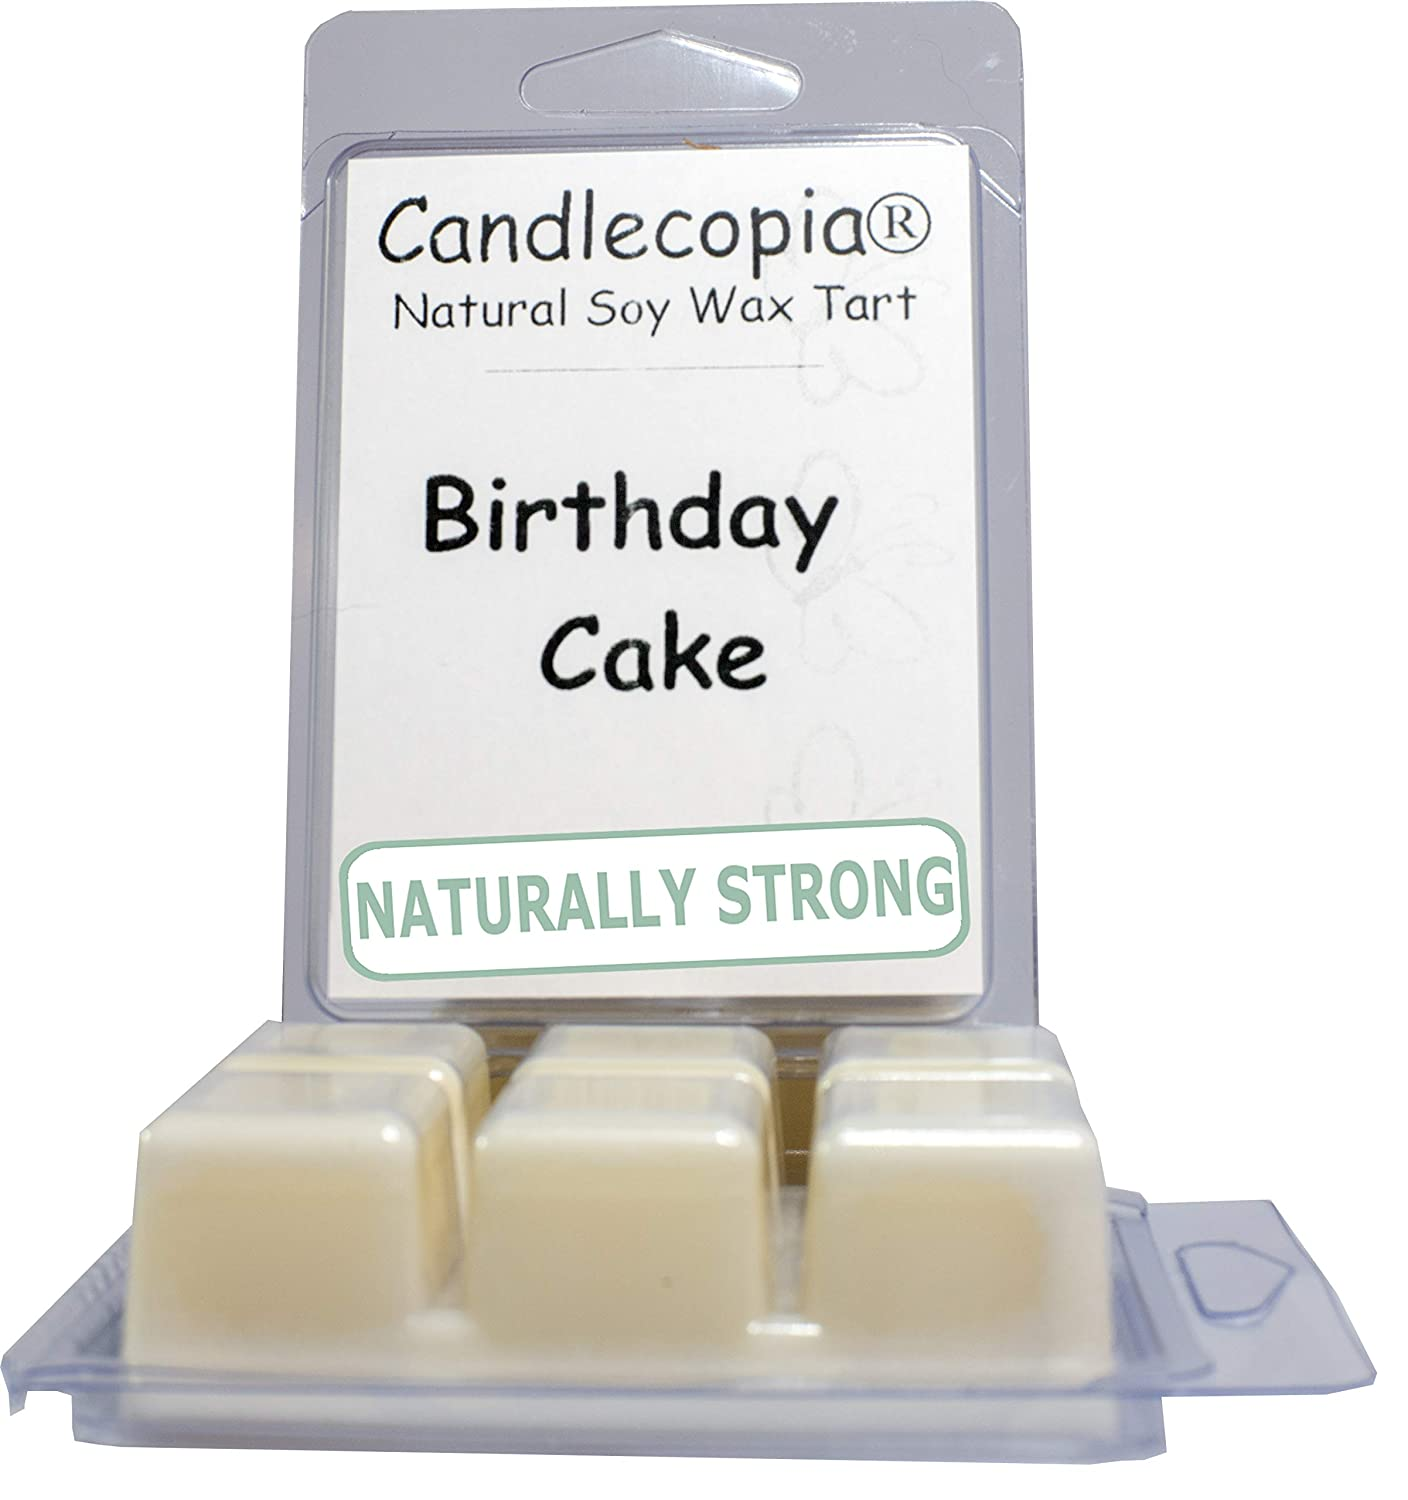 Candlecopia Birthday Cake Strongly Scented Hand Poured Vegan Wax Melts, 12 Scented Wax Cubes, 6.4 Ounces in 2 x 6-Packs